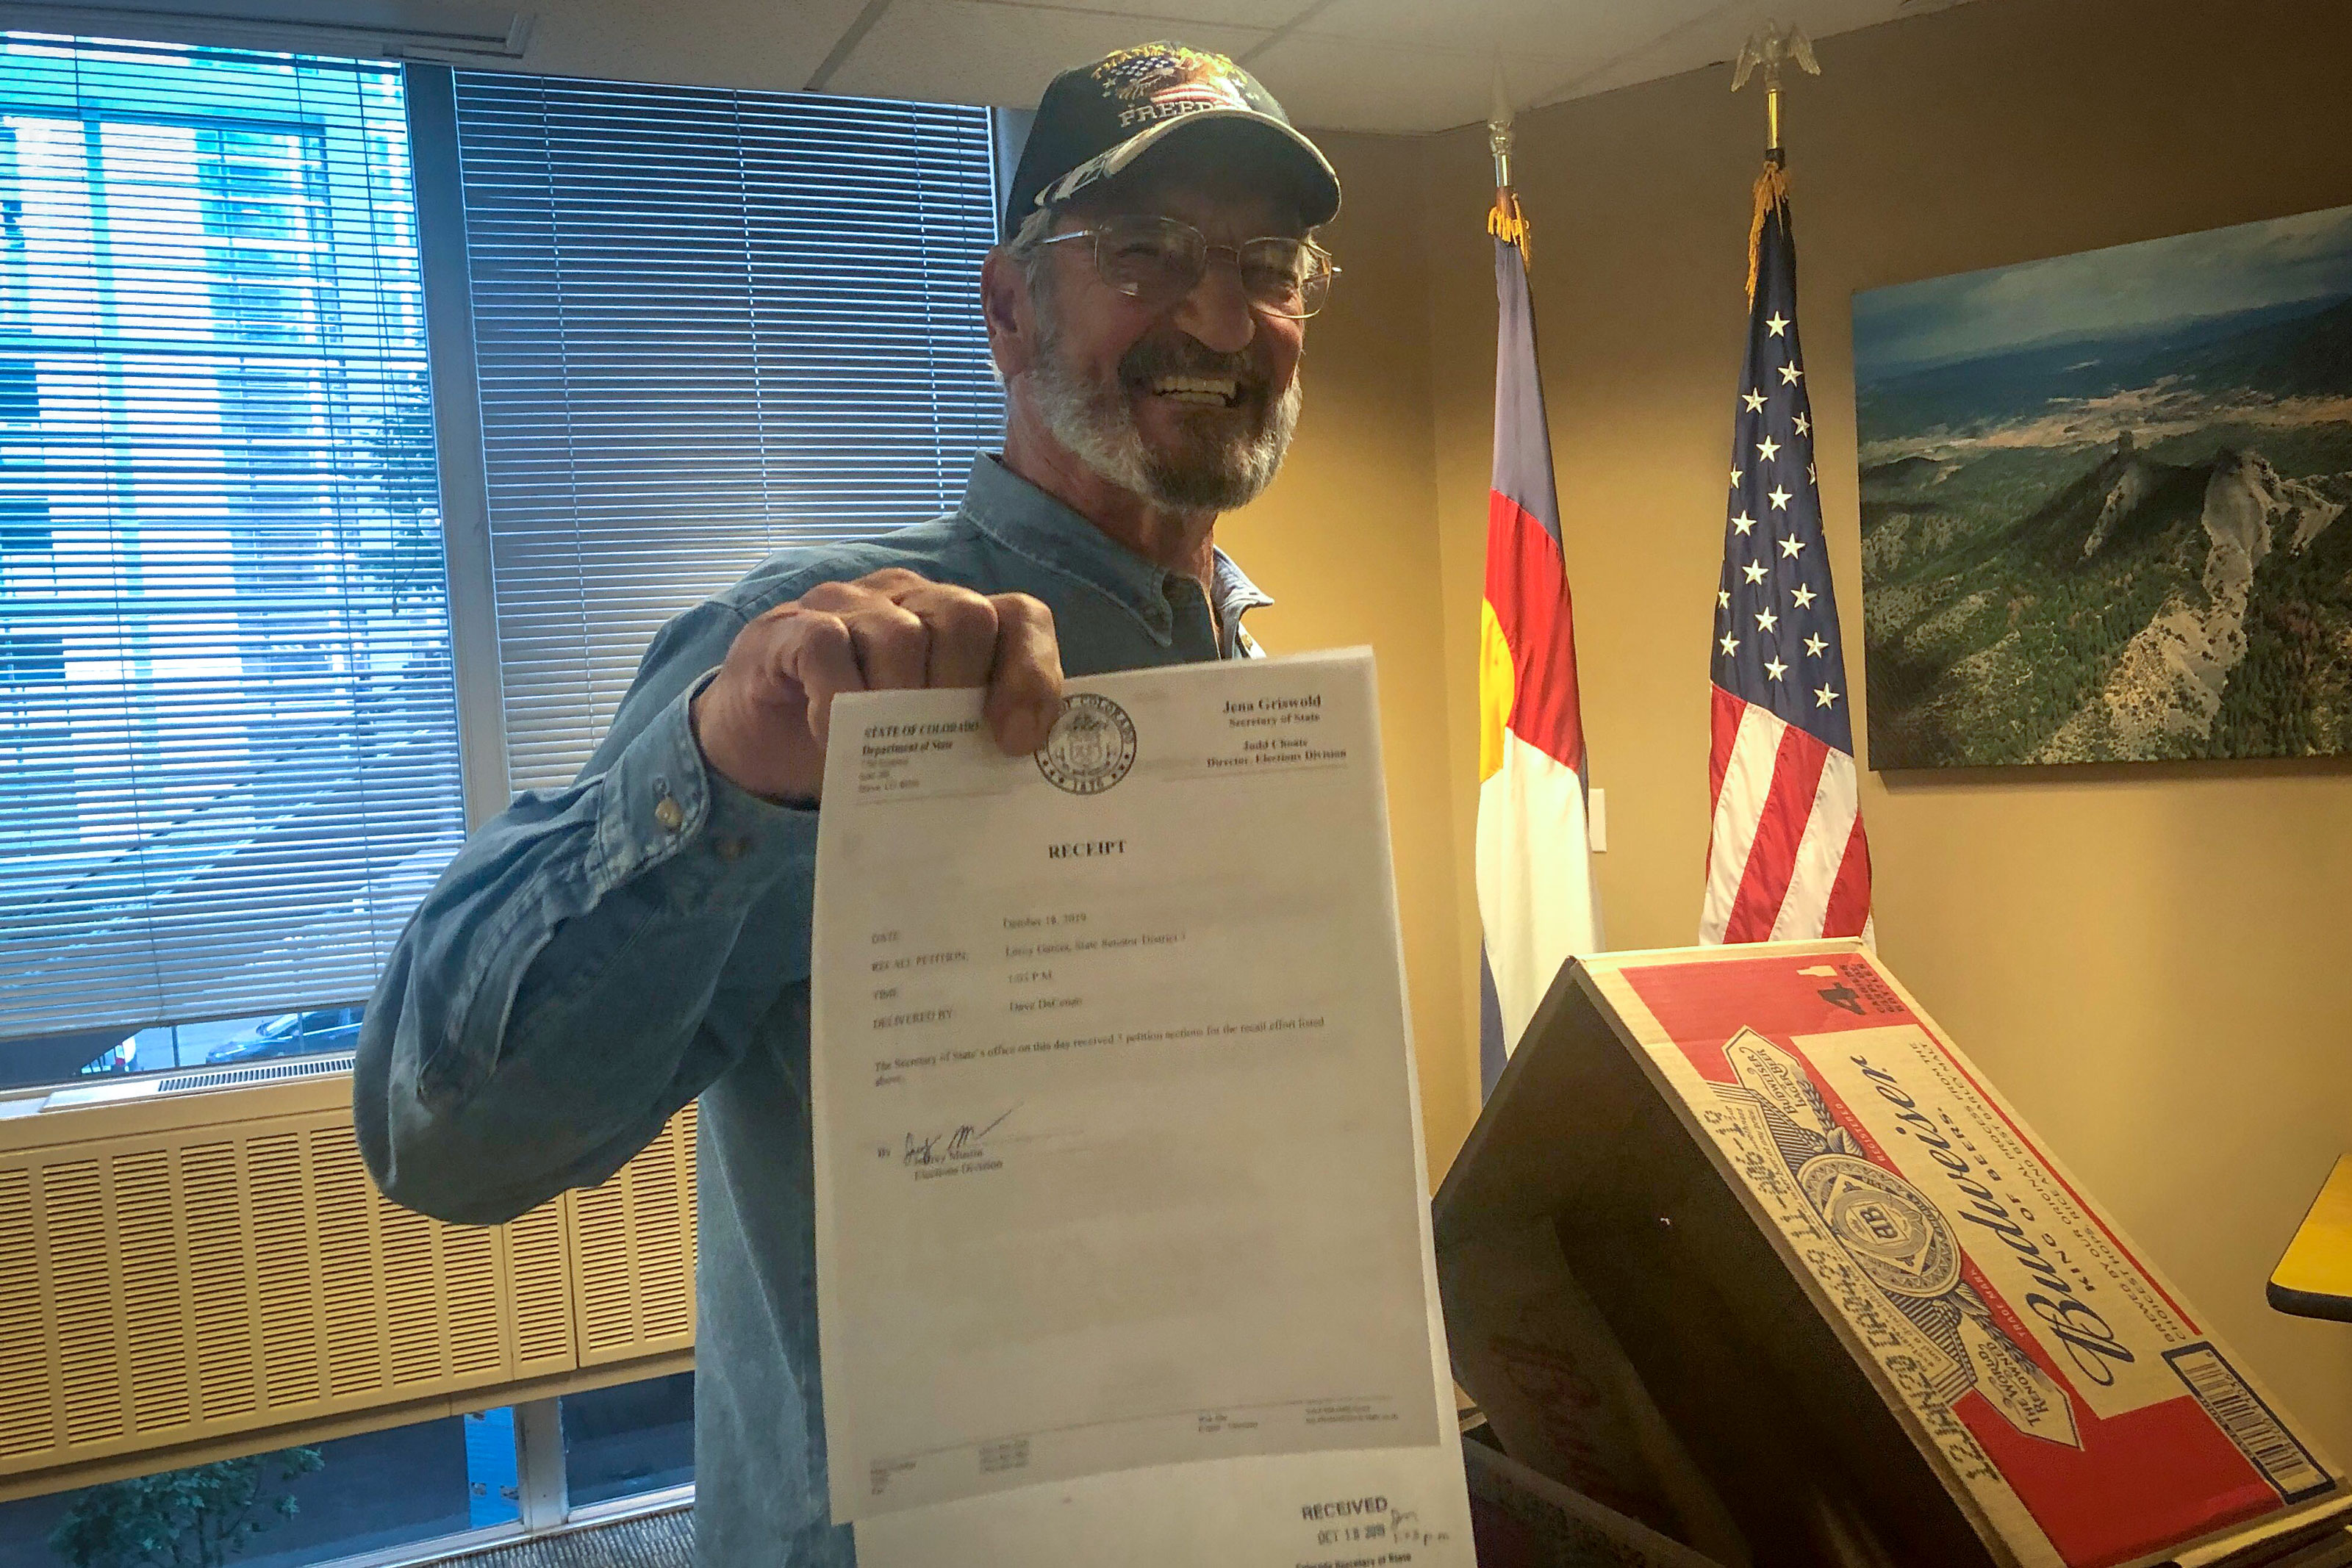 Campaign volunteer Joseph Santoro helped gather signatures in the failed recall effort against Democratic state Senate president Leroy Garcia.